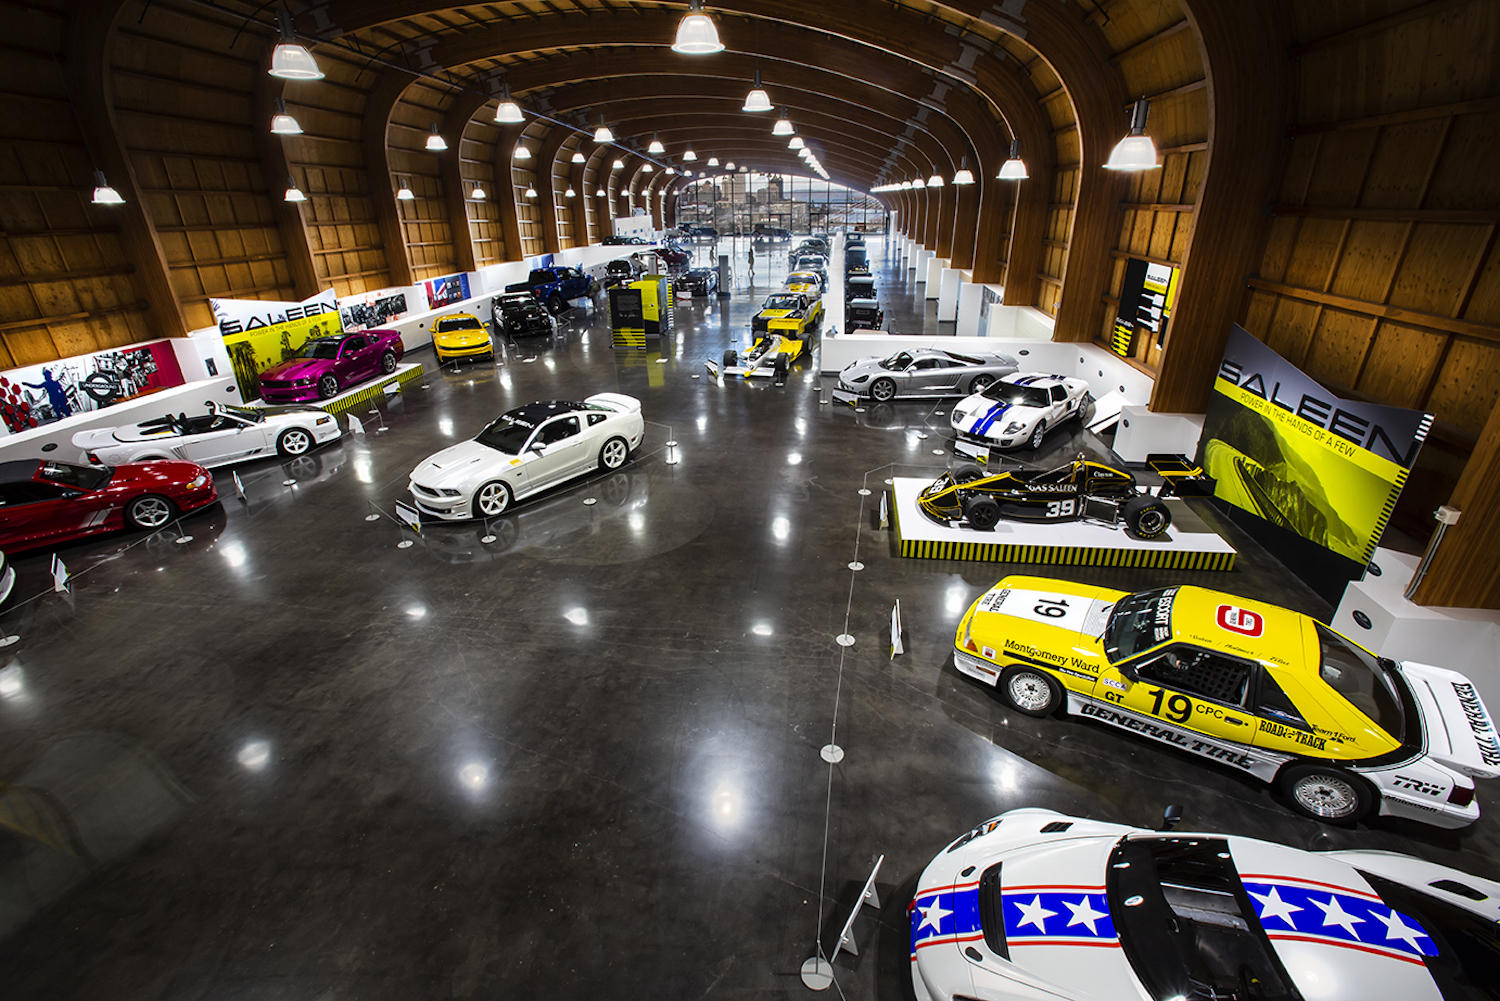 LeMay Museum Saleen Exhibit